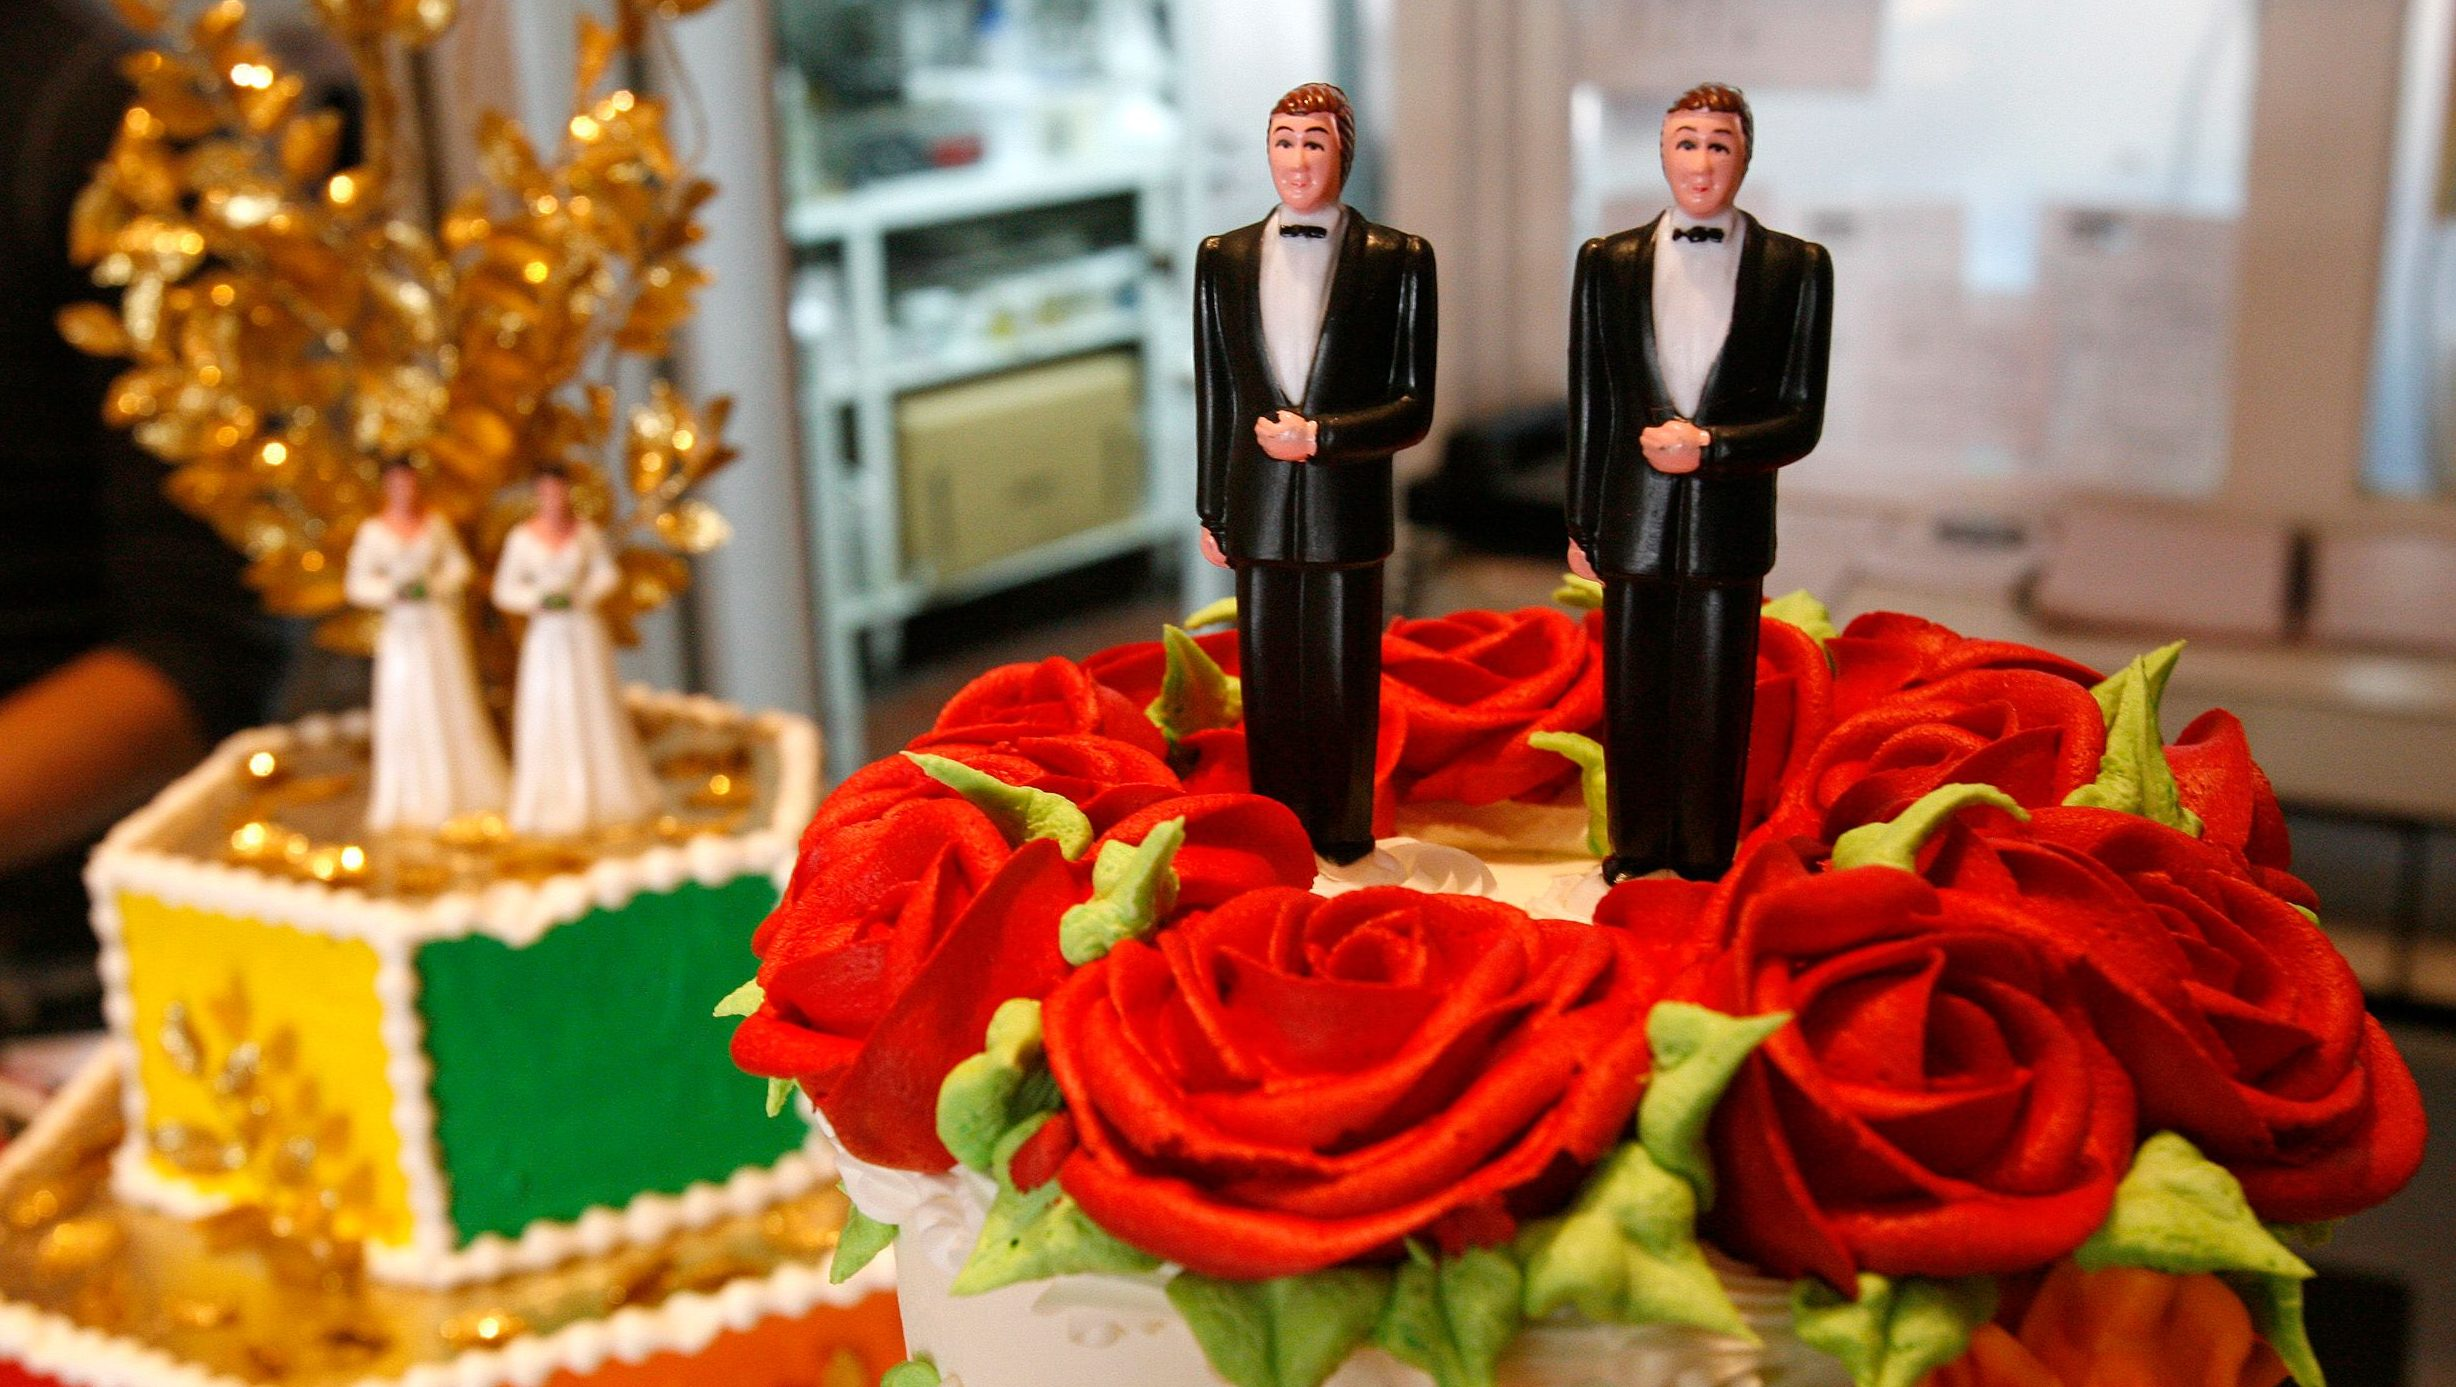 Bride and groom figurines are on display on wedding cakes at Cake and Art bakery in West Hollywood, California June 4, 2008. A California Supreme Court ruling on Wednesday clears the way for gay marriage ceremonies that could bring a business windfall to San Francisco and other cities starting this month.  REUTERS/Mario Anzuoni   (UNITED STATES) - GM1E46512PH01